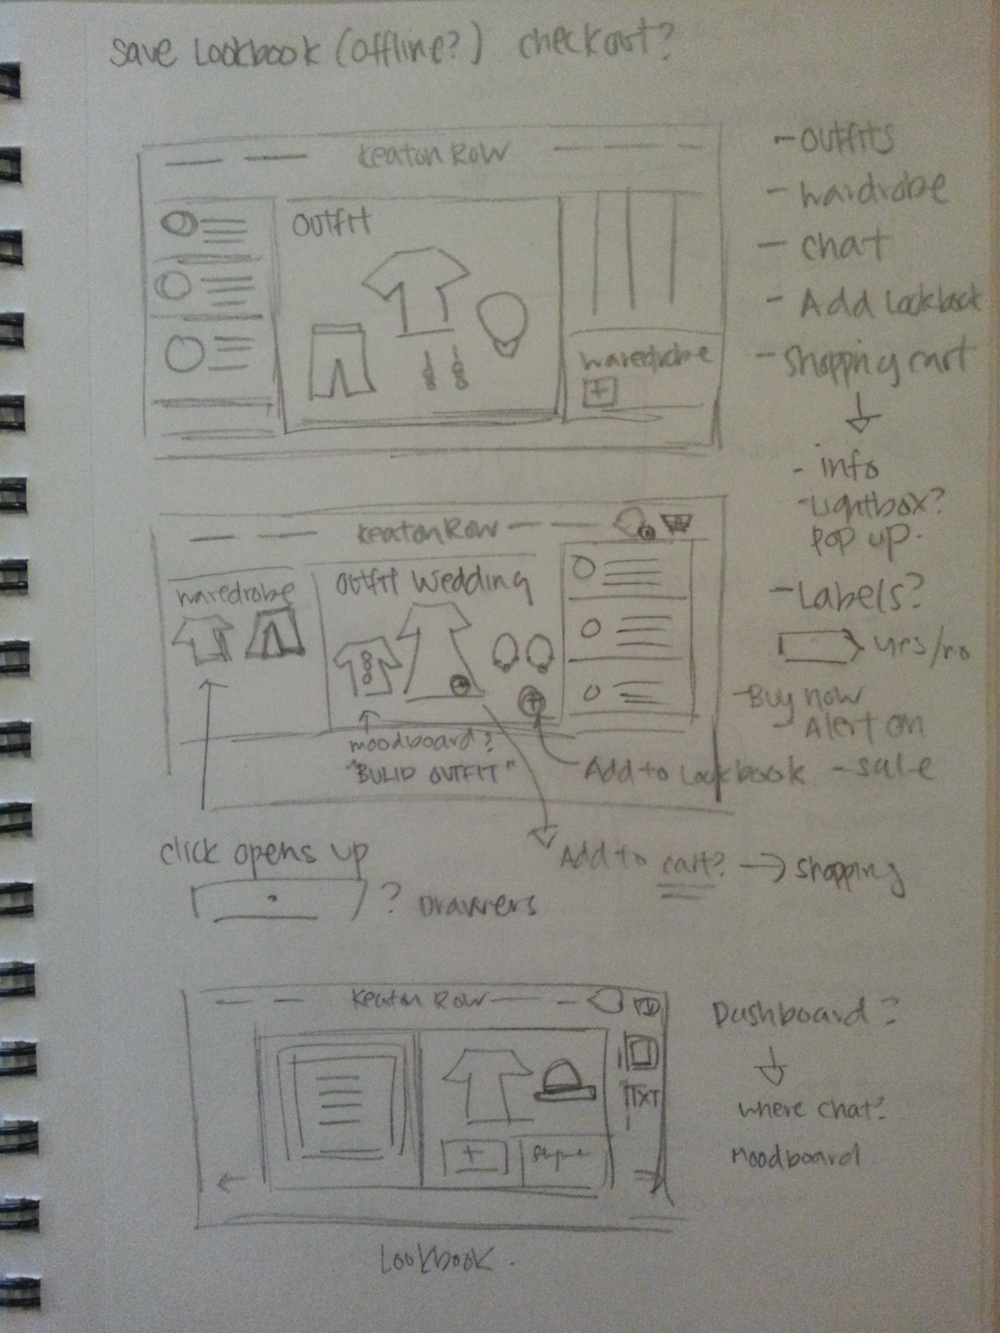 Rough sketches for wireframe/visual mockup